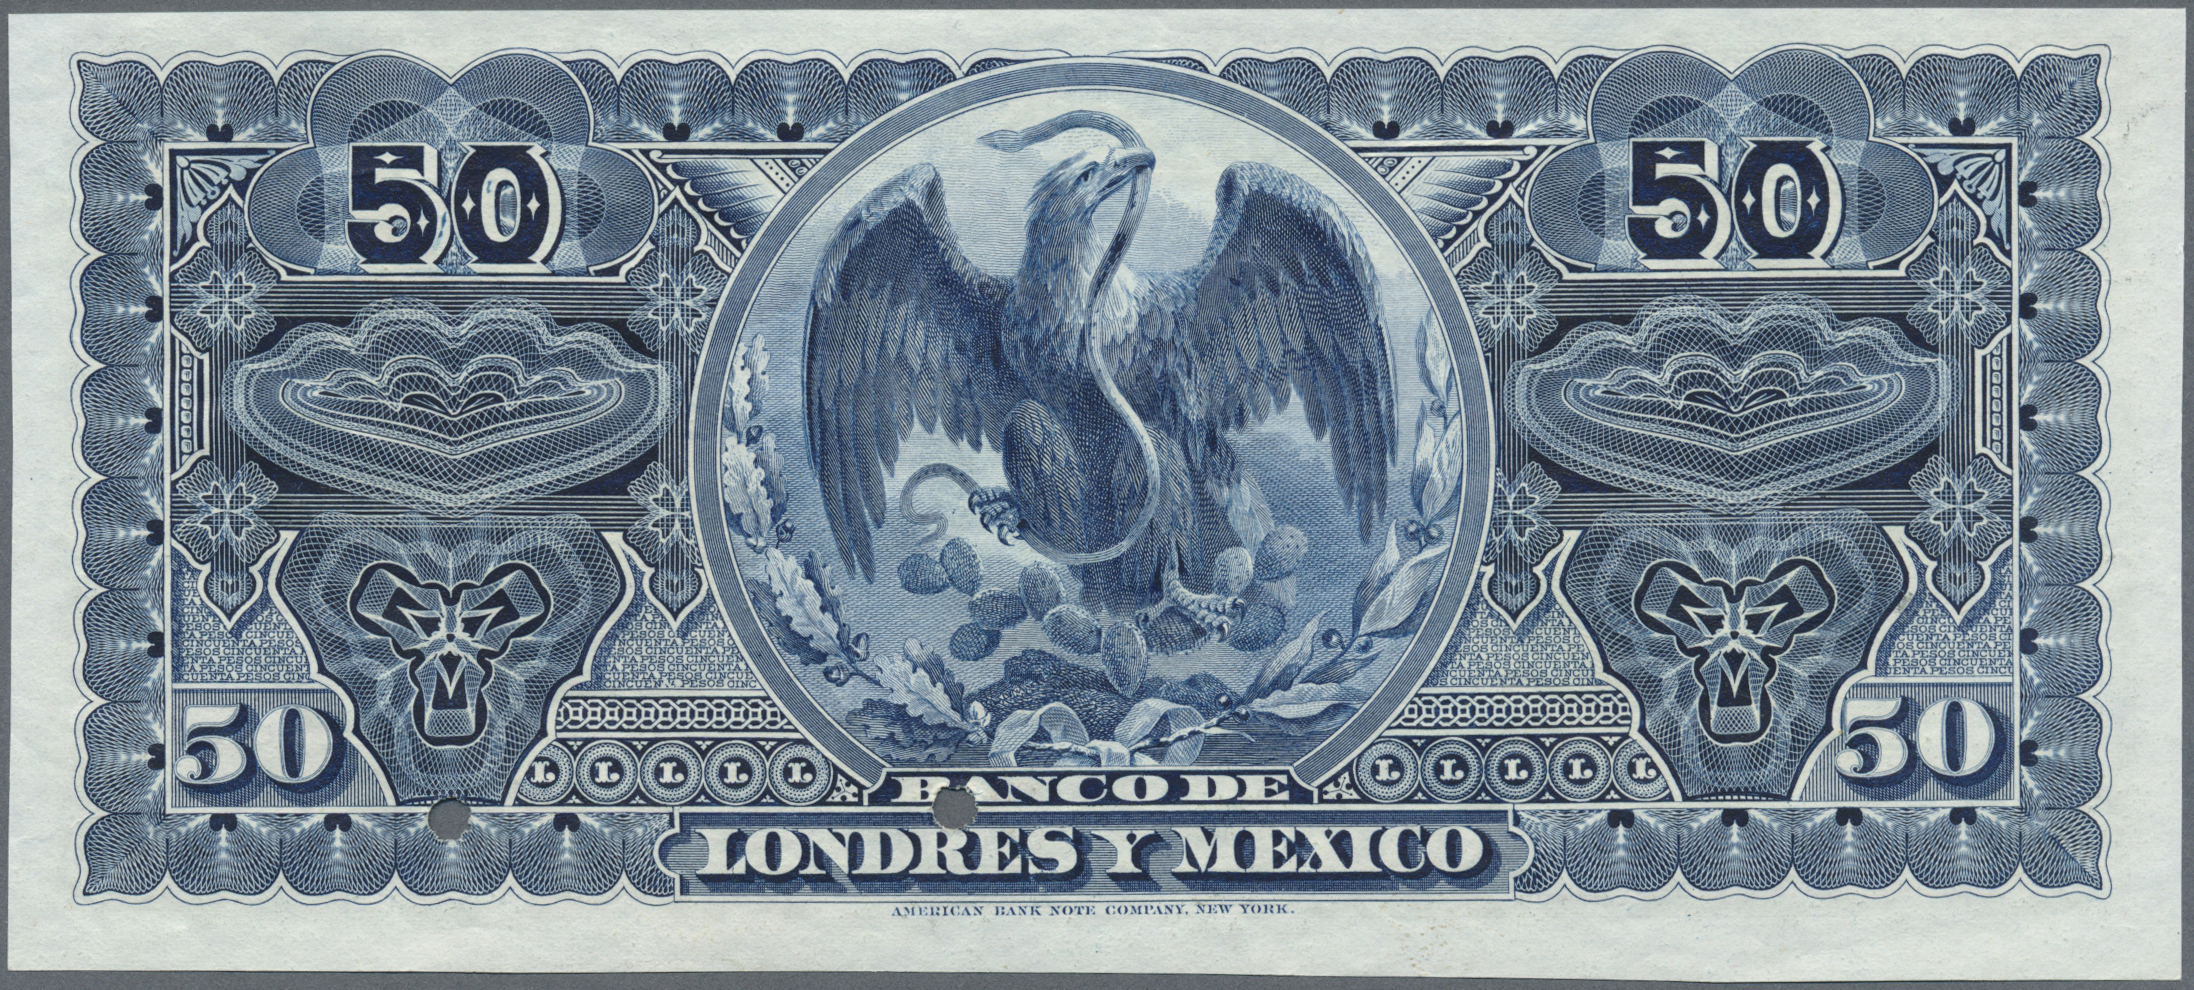 Lot 1325 - Mexico | Banknoten - Auktionshaus Christoph Gärtner GmbH & Co.  KG Banknotes